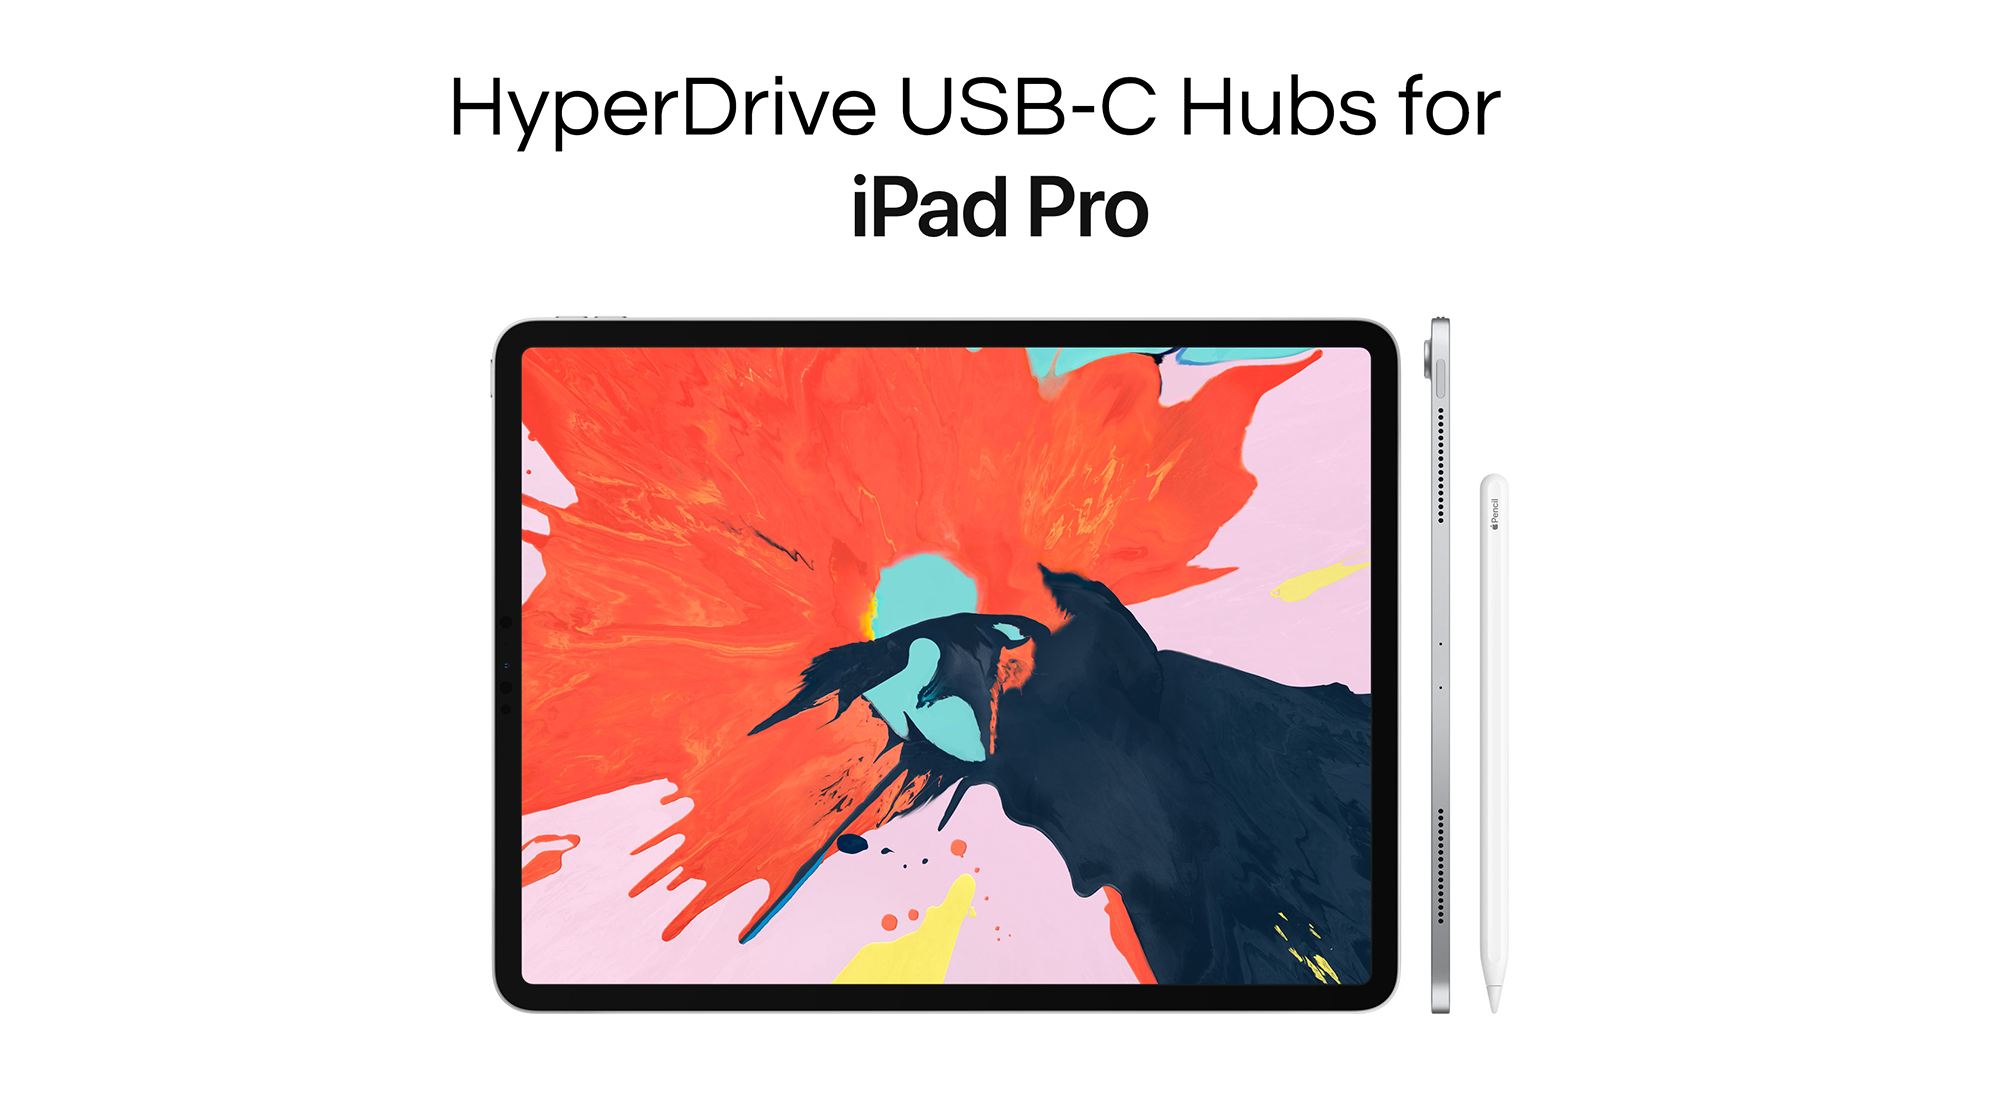 HyperDrive USB-C Hubs for New 2018 iPad Pro